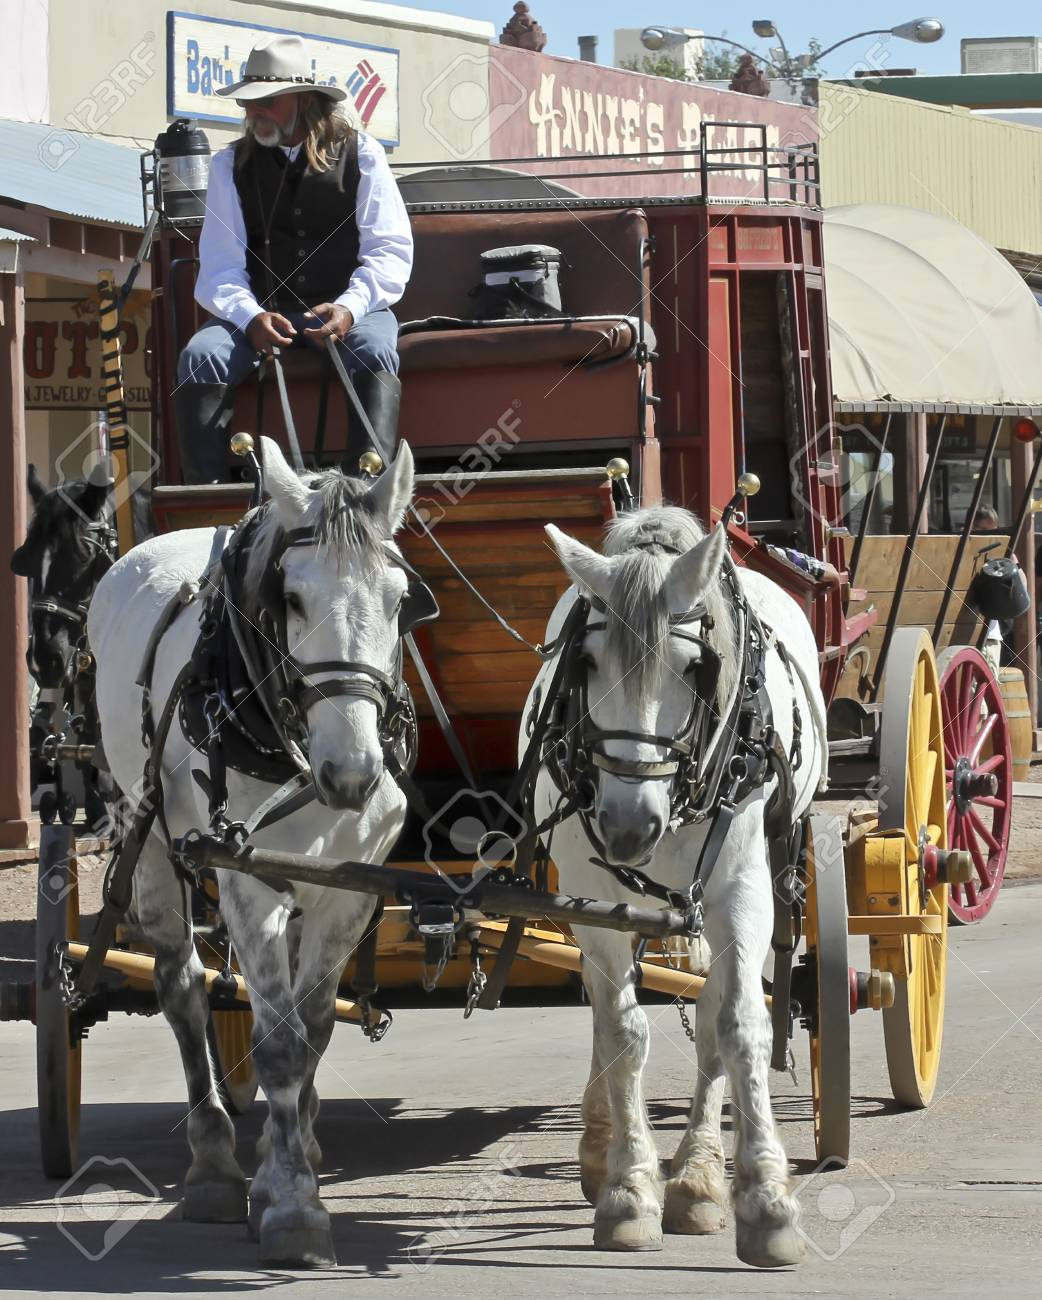 Tombstone, Arizona - October 22: Allen Street on October 22, 2011, in Tombstone, Arizona. A Helldorado stagecoach welcomes tourists to historic Allen Street where gunfights and barroom brawls are staged during this annual celebration of the Old West. Stock Photo - 11013649